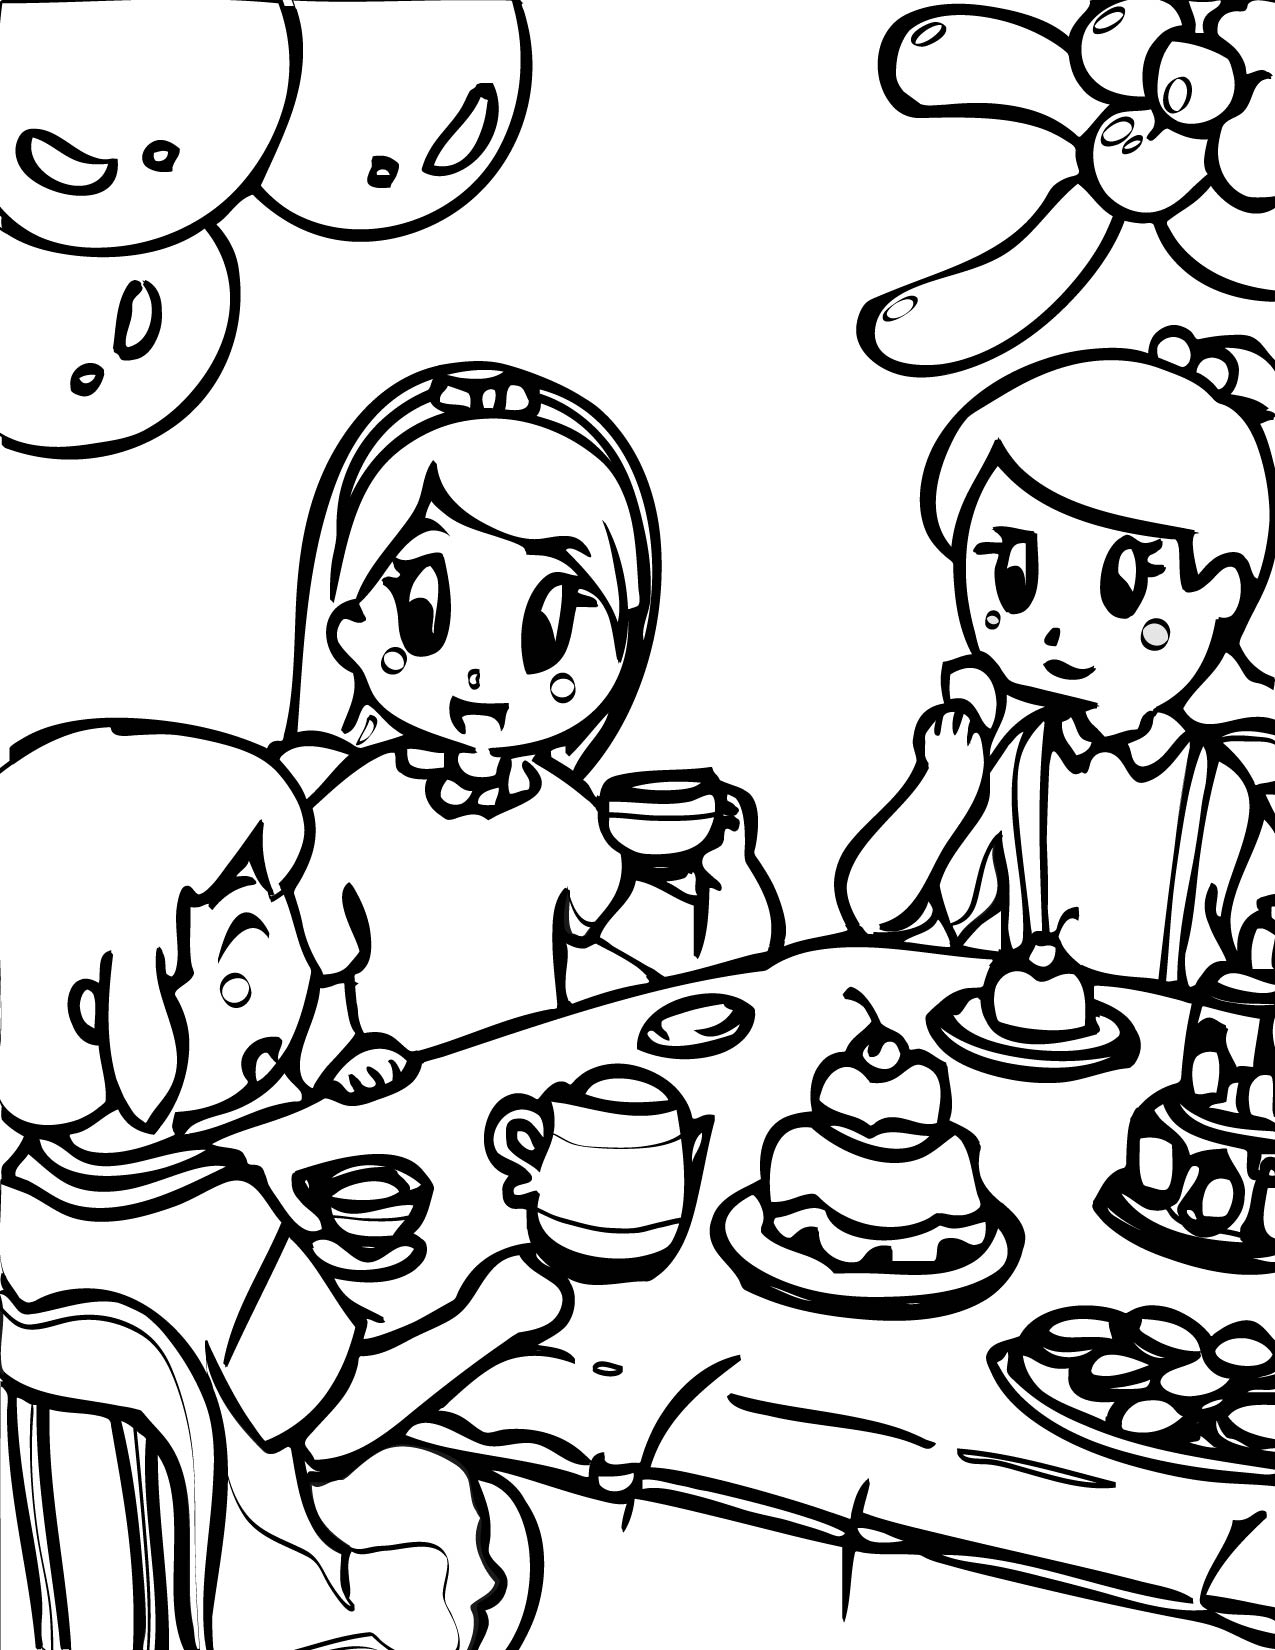 tea party tea party coloring page - Princess Tea Party Coloring Pages